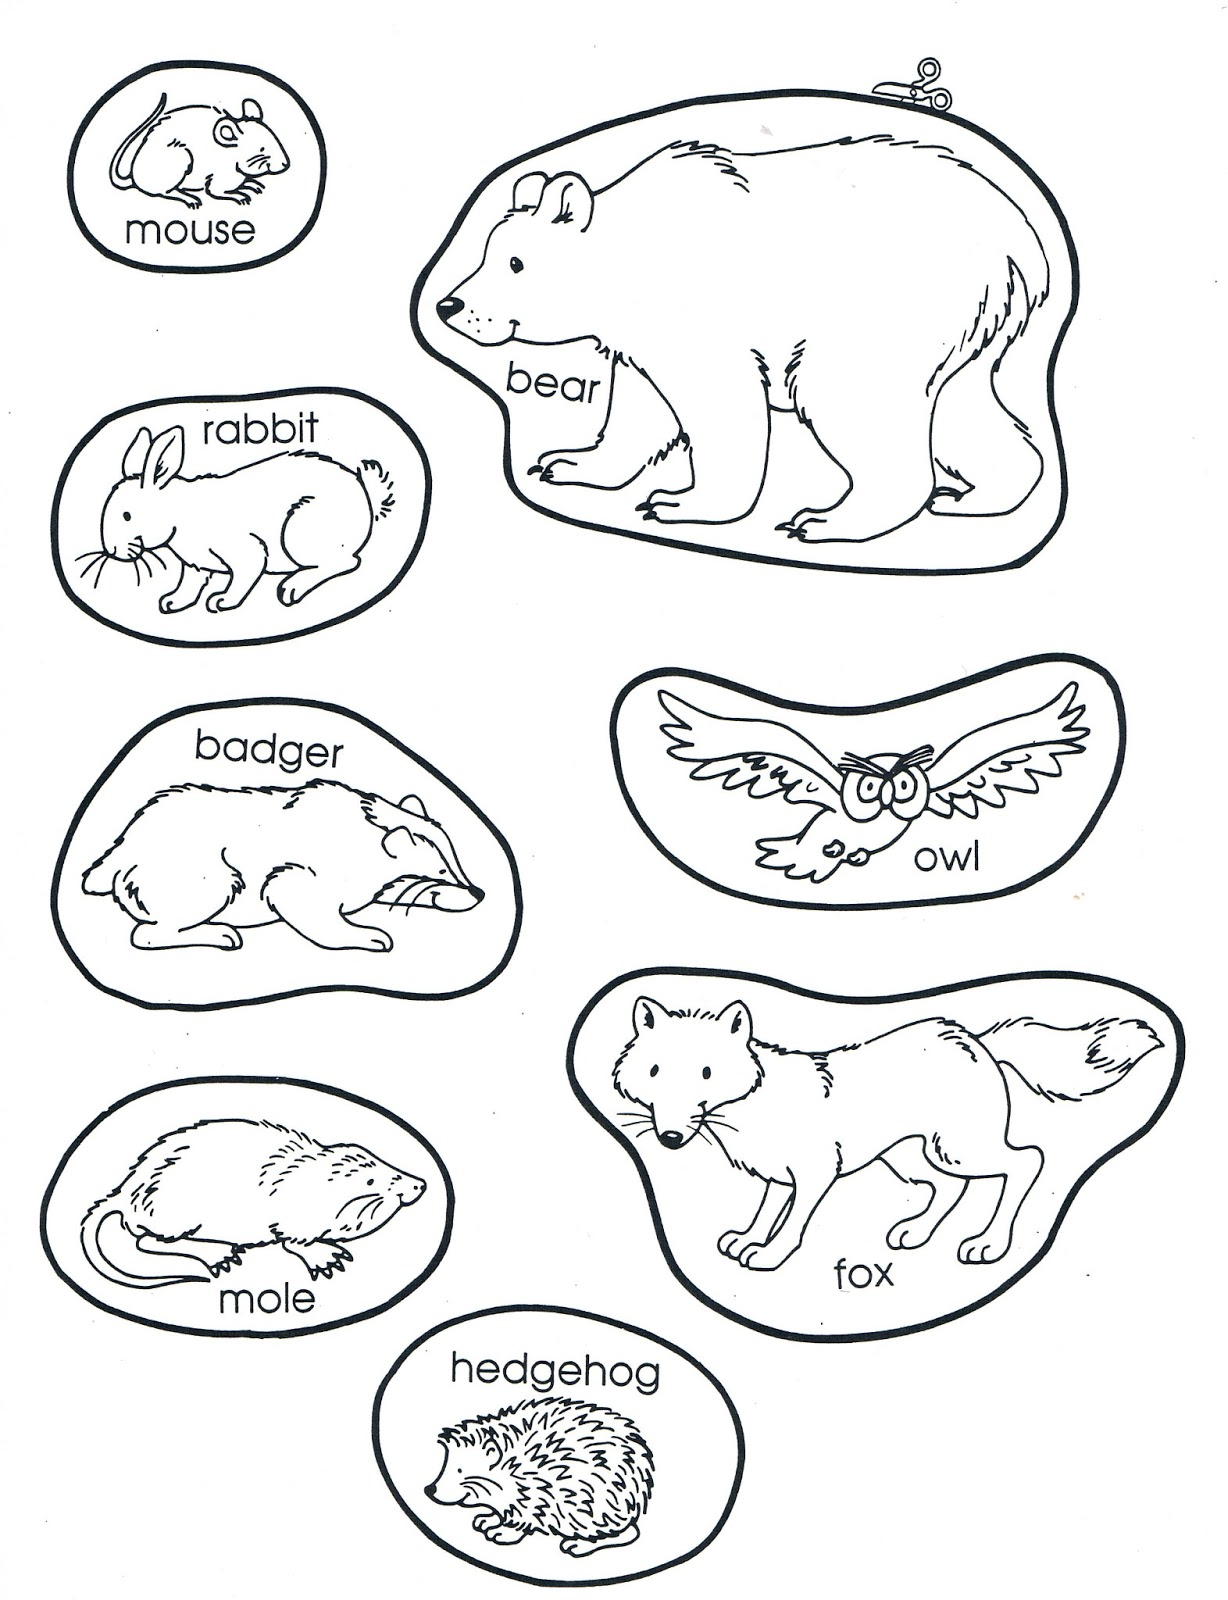 image regarding The Mitten Animals Printable named Adams Household Farm and Homeschool: Library Tale Season - The